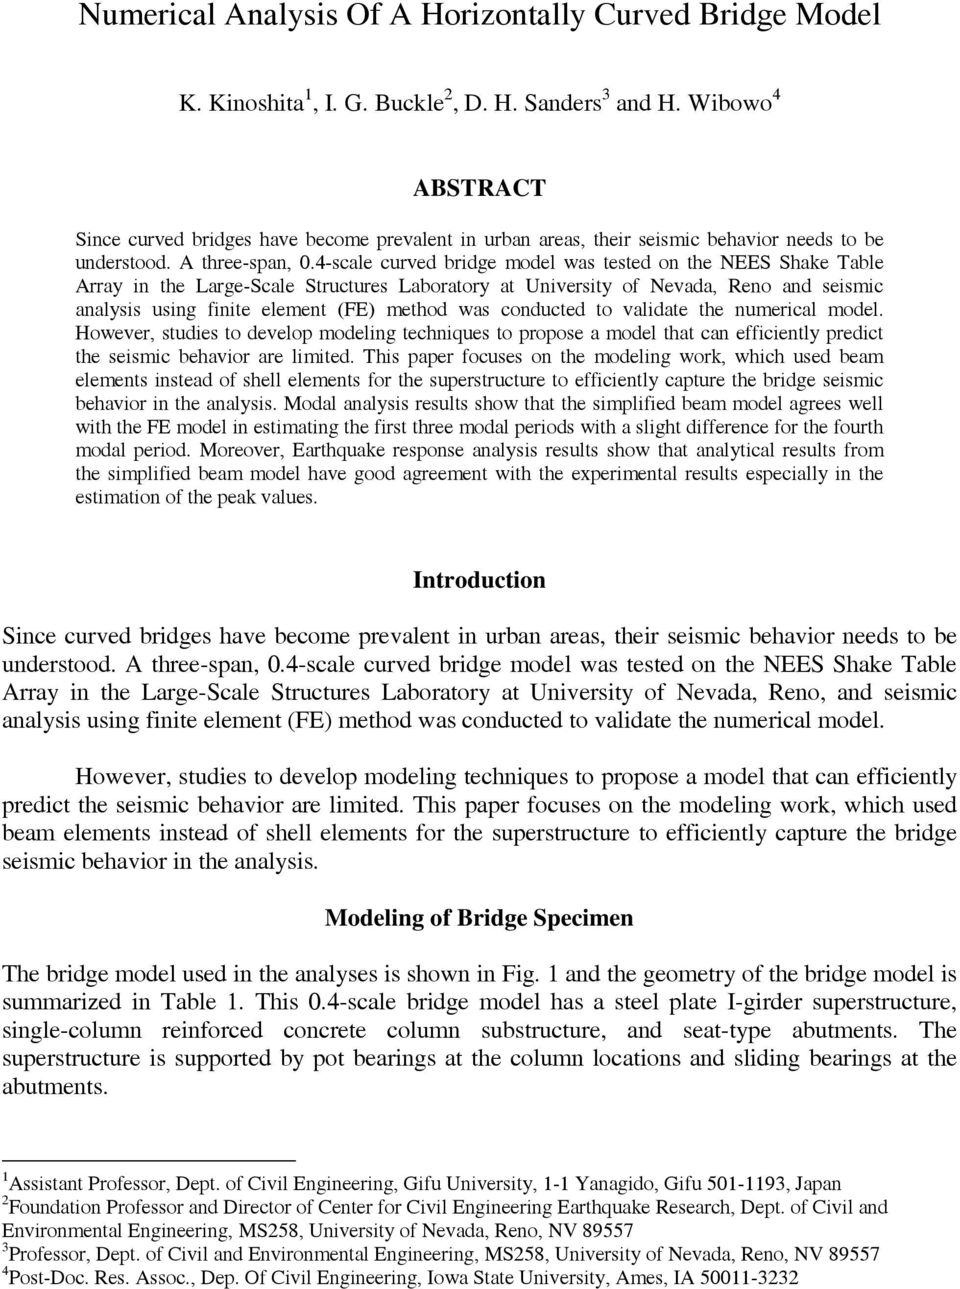 NUMERICAL ANALYSIS OF A HORIZONTALLY CURVED BRIDGE MODEL - PDF